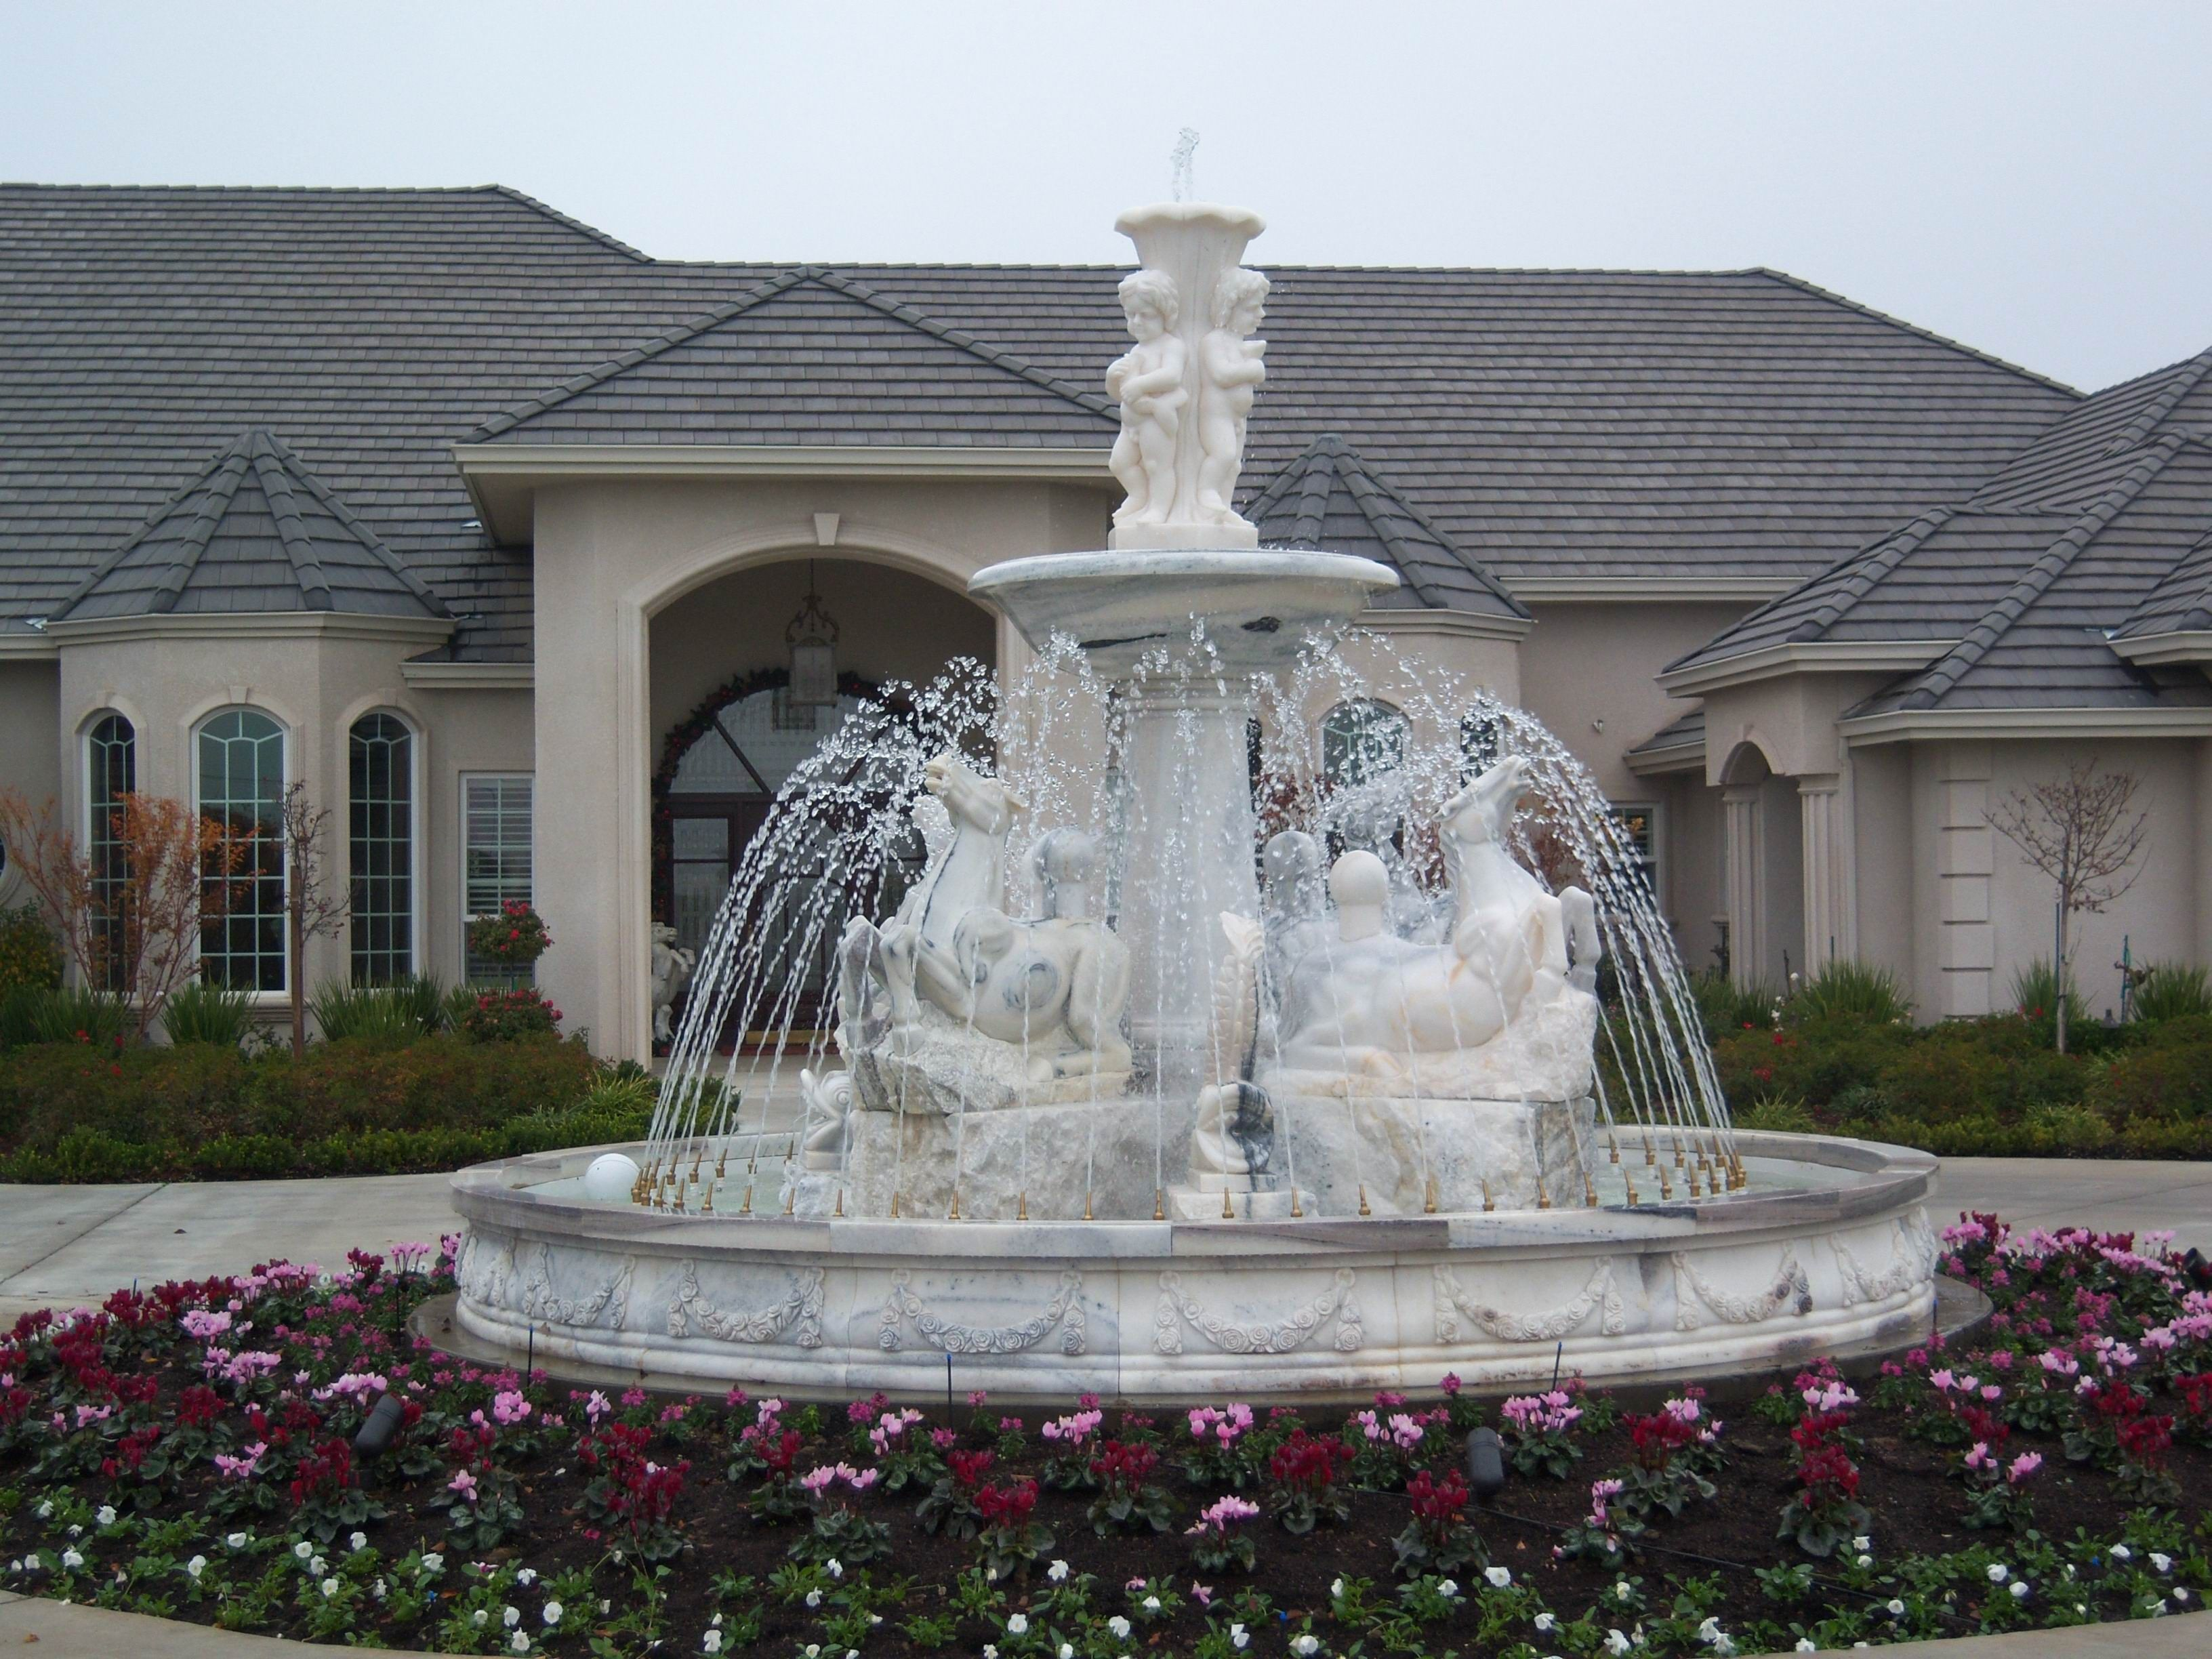 Outdoor Water Fountains | HOME OVER 200 SELECTIONS   24 HOUR ENTERTAINMENT  Click On Images For